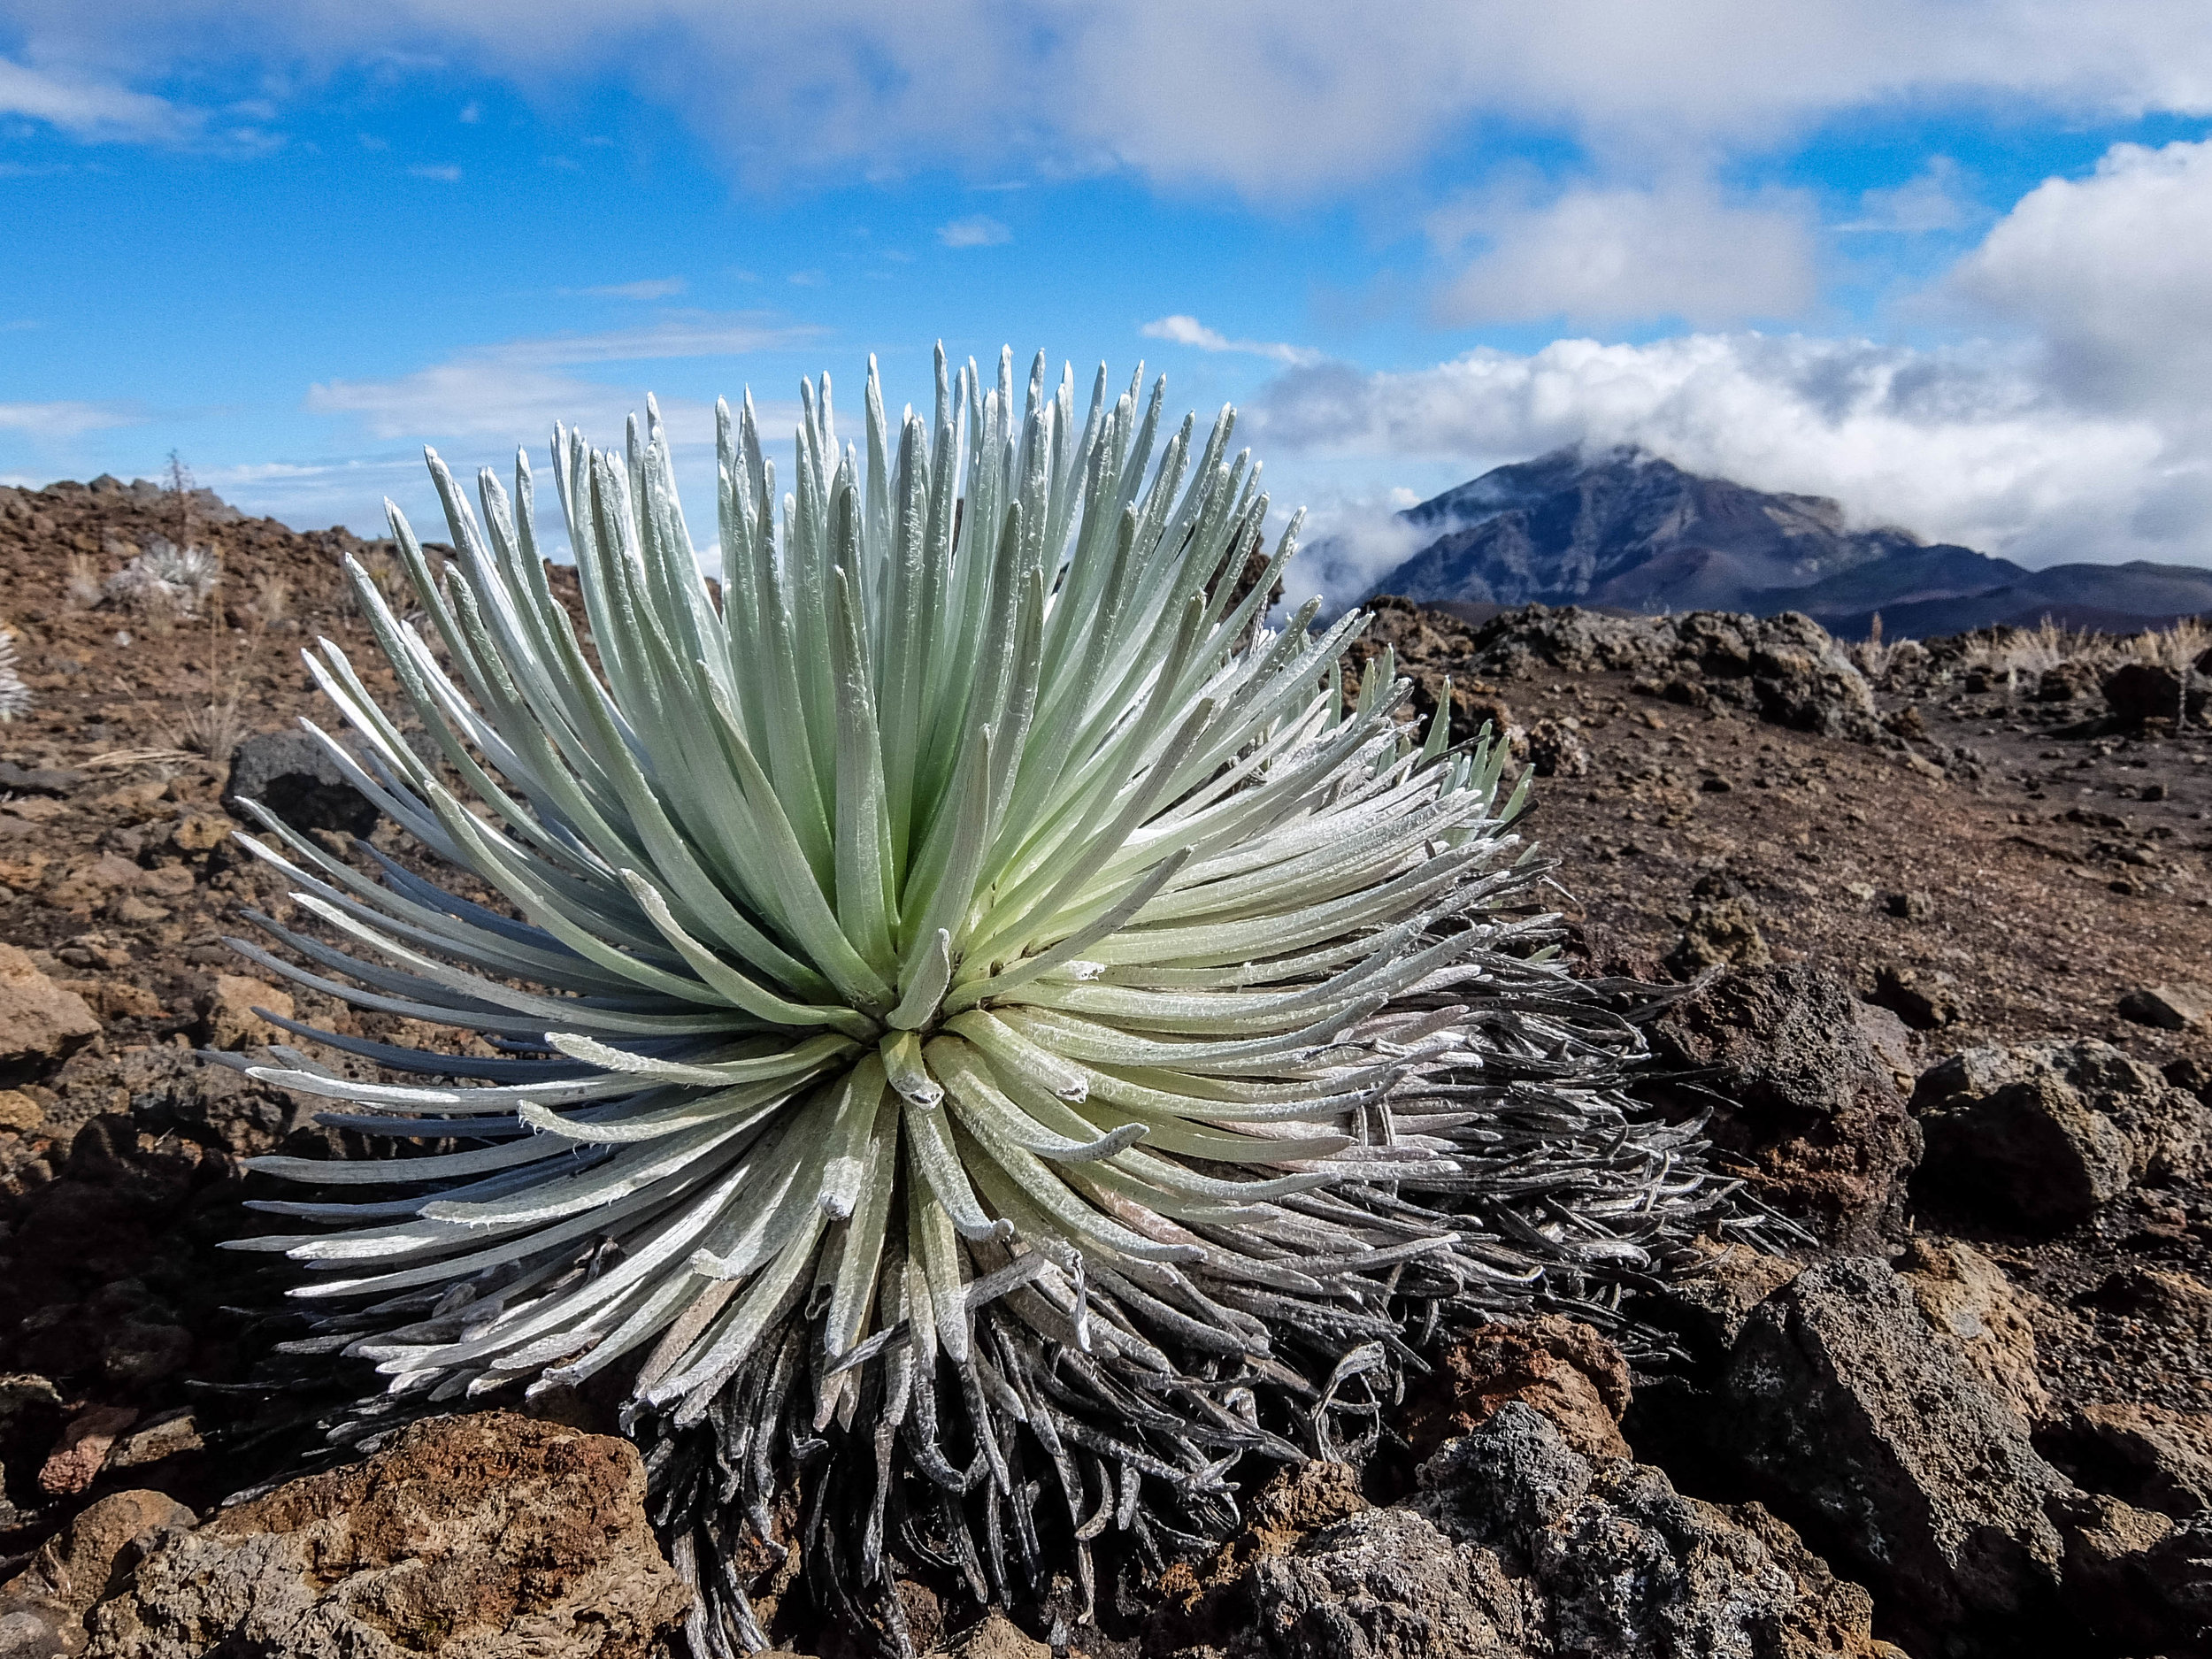 The endangered Silversword can only be seen in Haleakalā National Park.